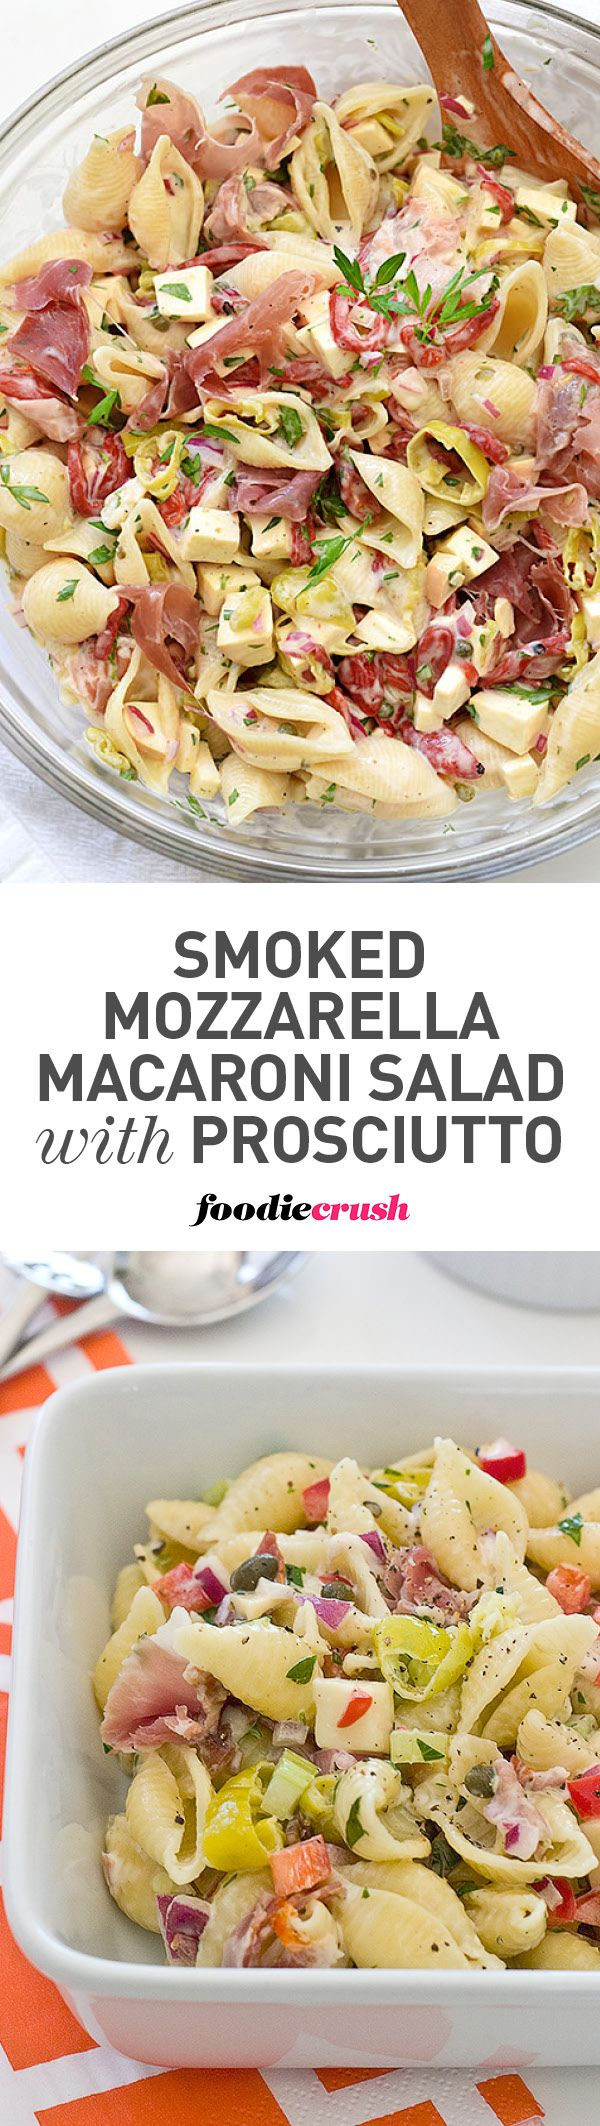 This tangy pasta salad mixes traditional macaroni salad with Italian flavors to create a new family favorite potluck salad. | foodiecrush.com #macaronisalad #potluck #salad